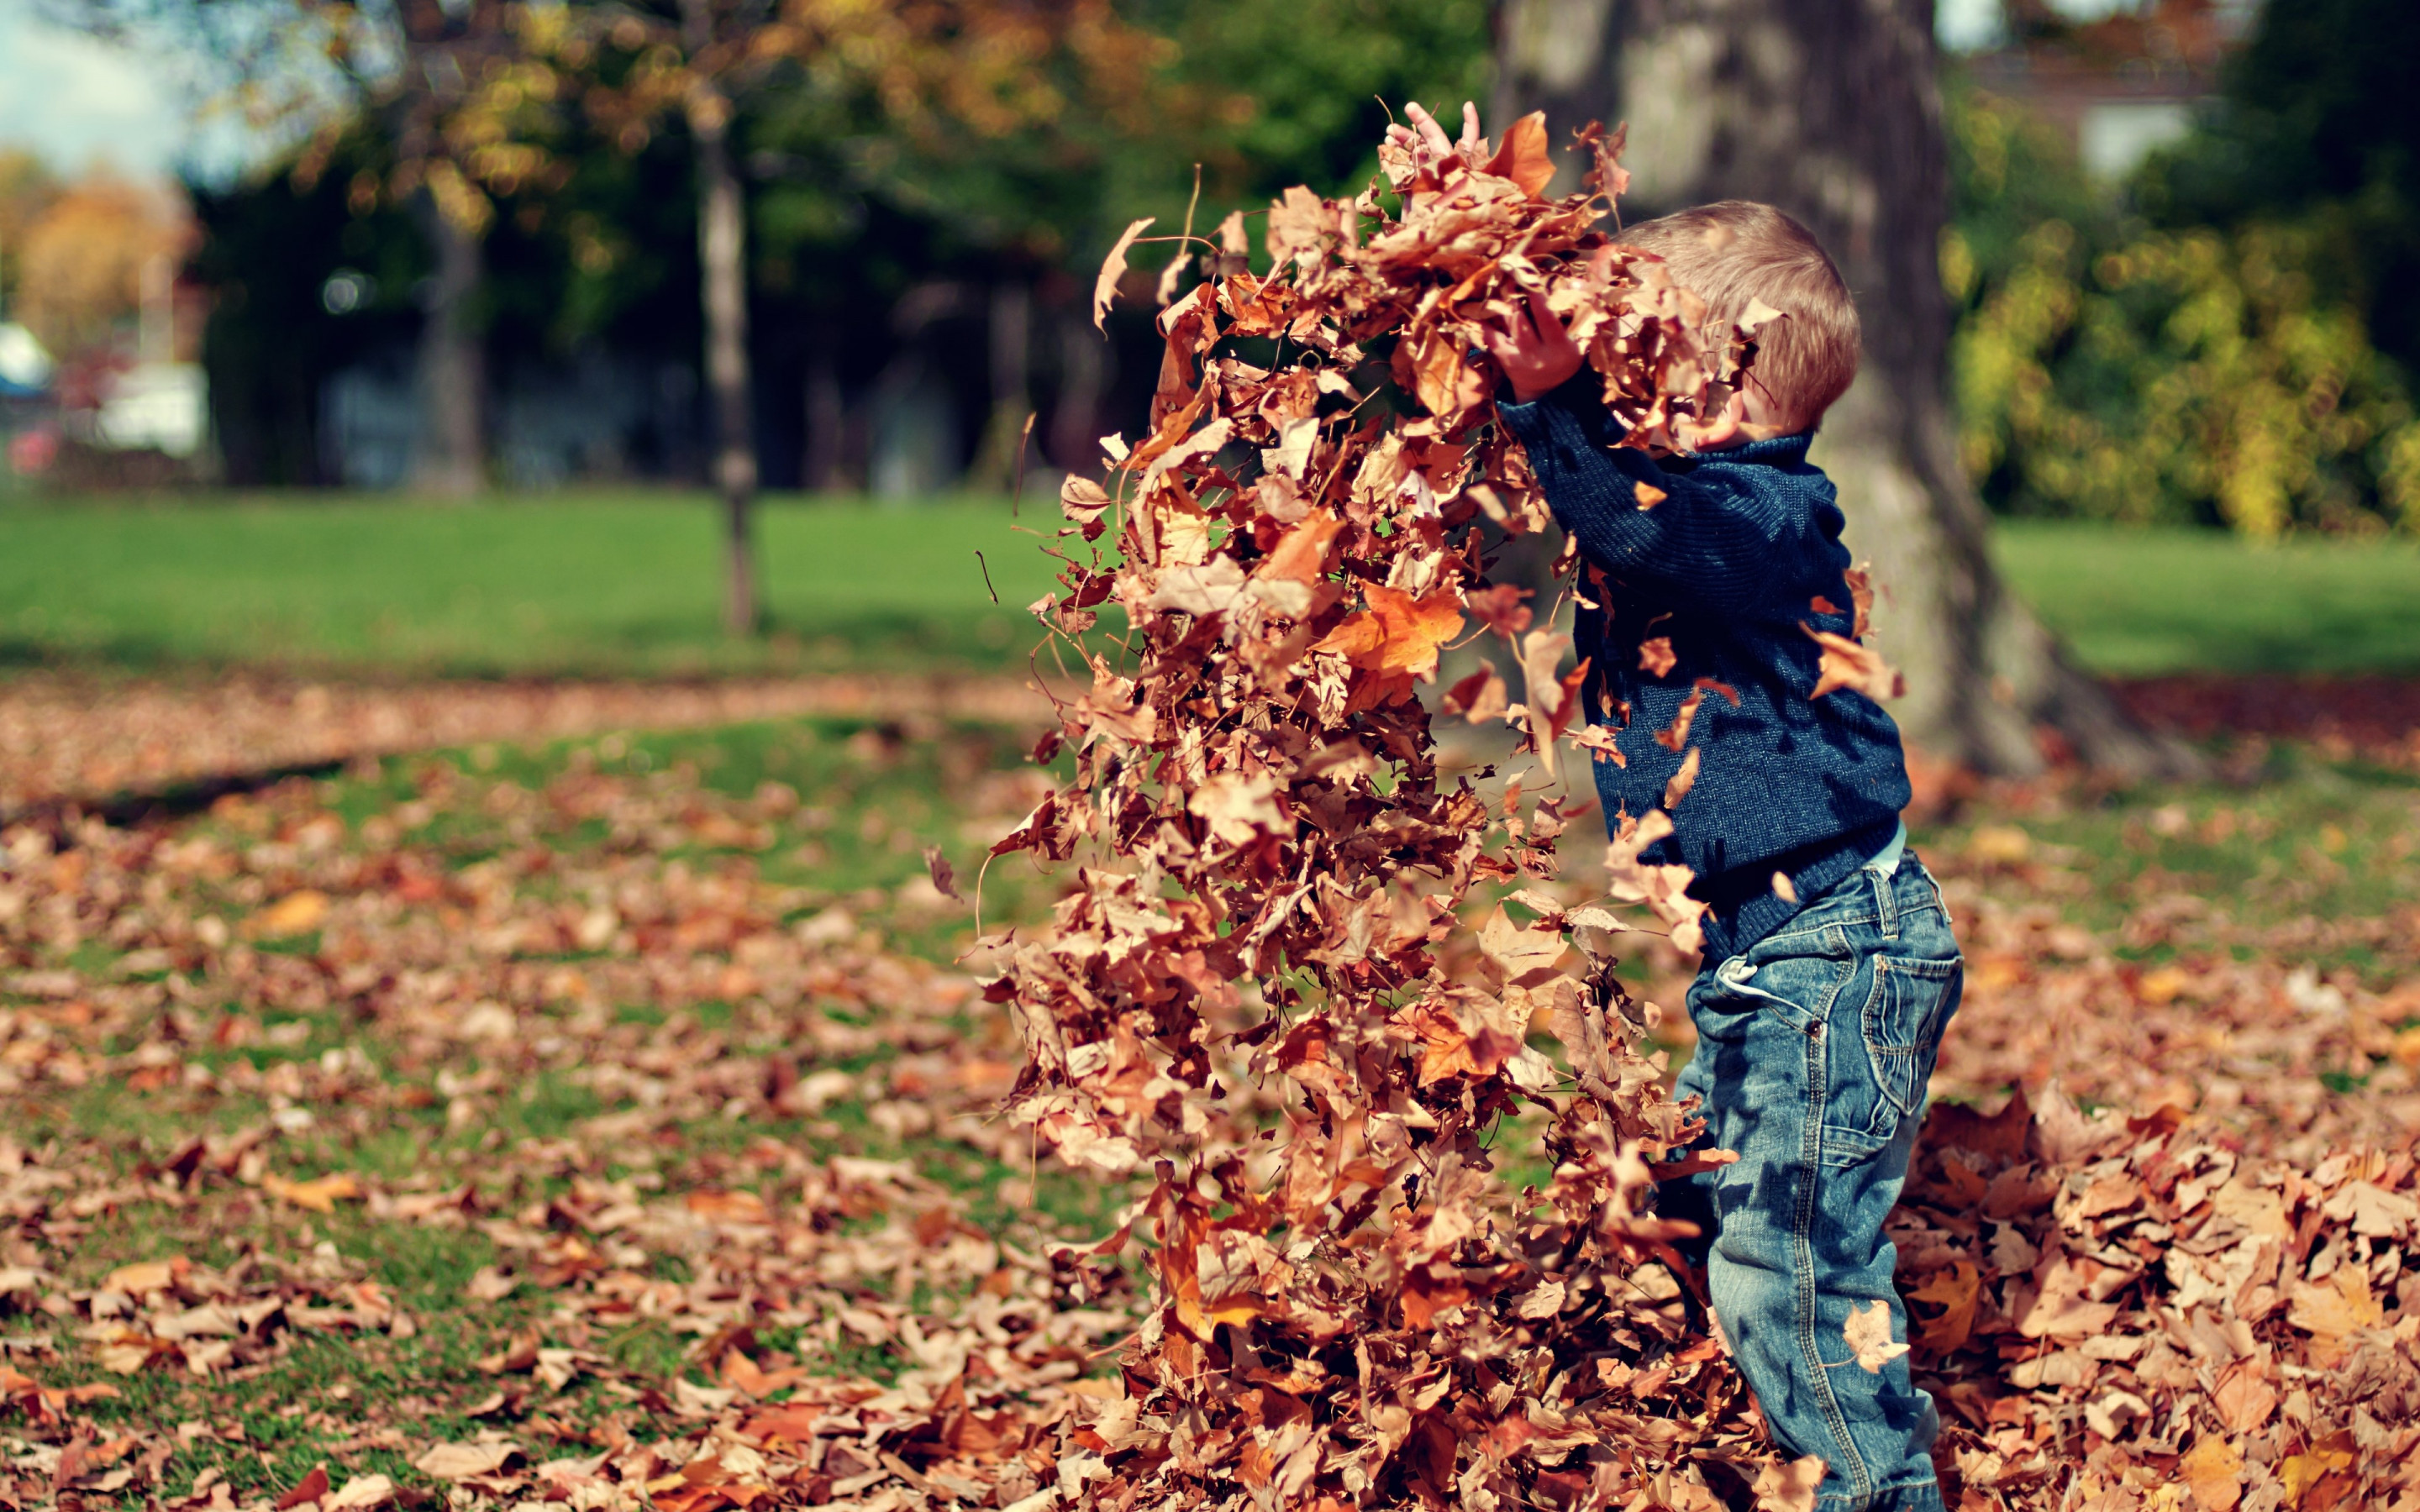 The child is playing with leaves | 2880x1800 wallpaper